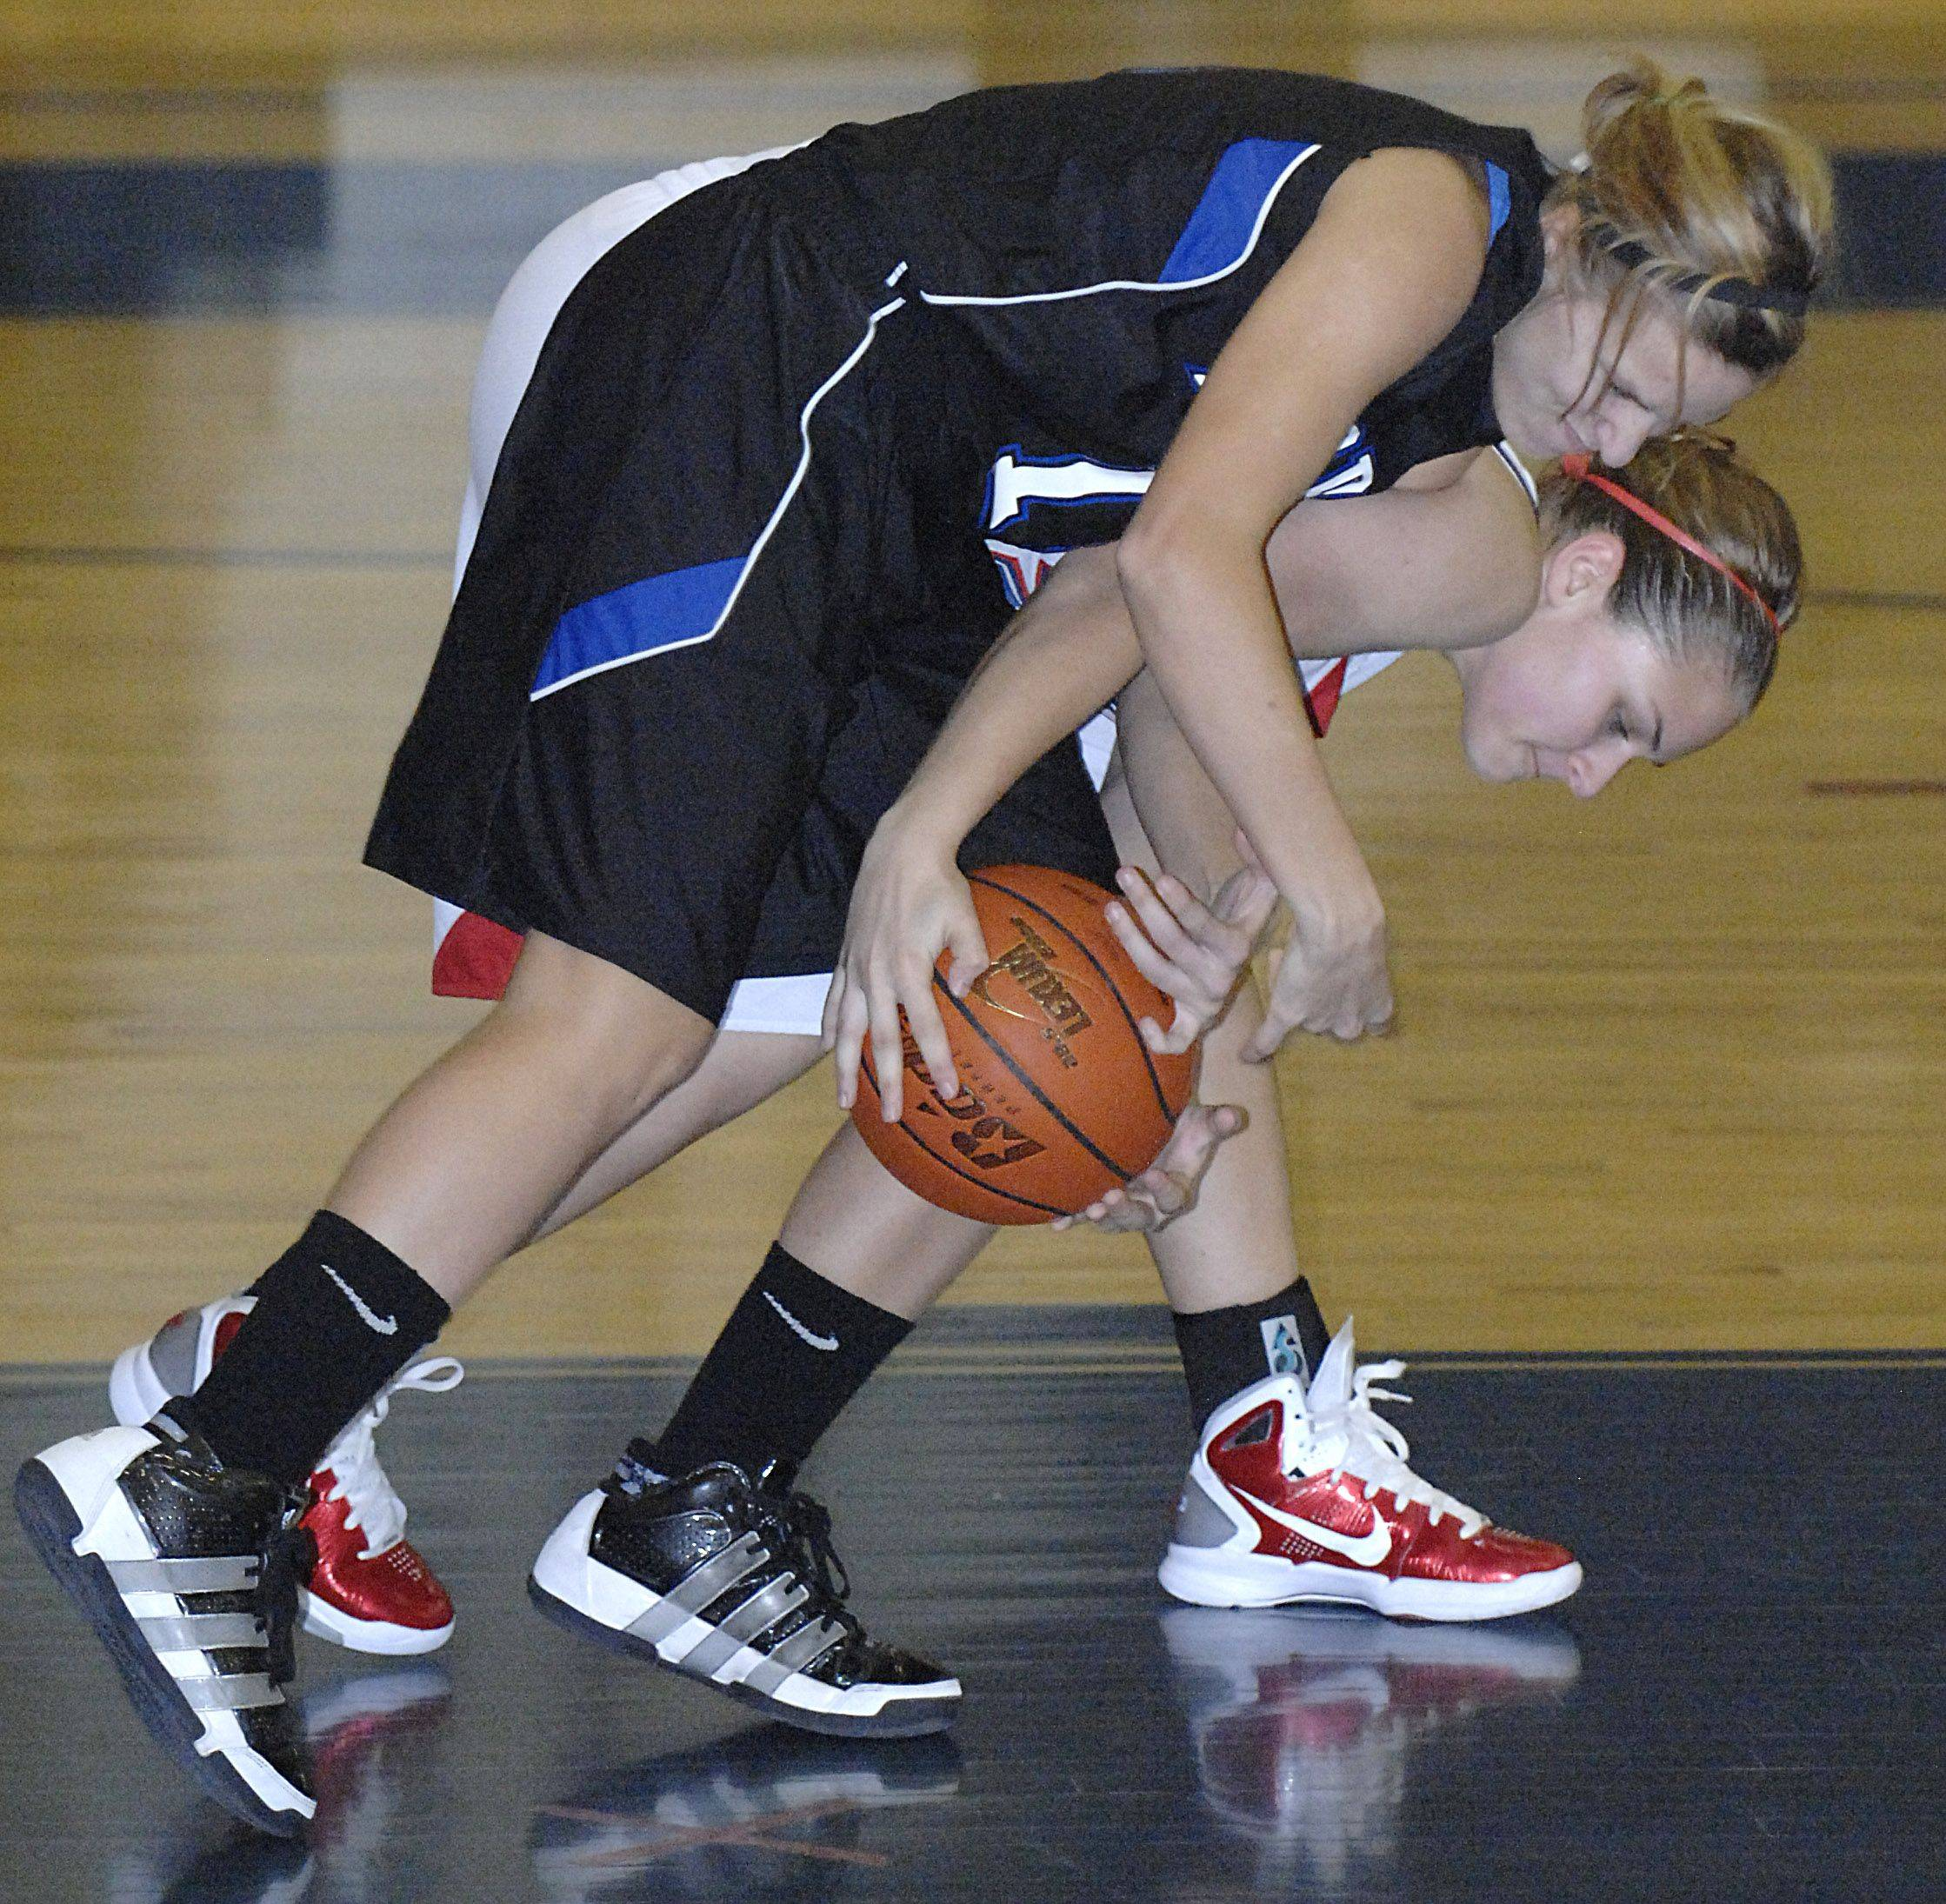 Laura Stoecker/lstoecker@dailyherald.com St. Charles North's Megan Booe and South Elgin's Amanda Behles wrestle for the ball near the Storm's hoop in the second quarter on Saturday, December 11.